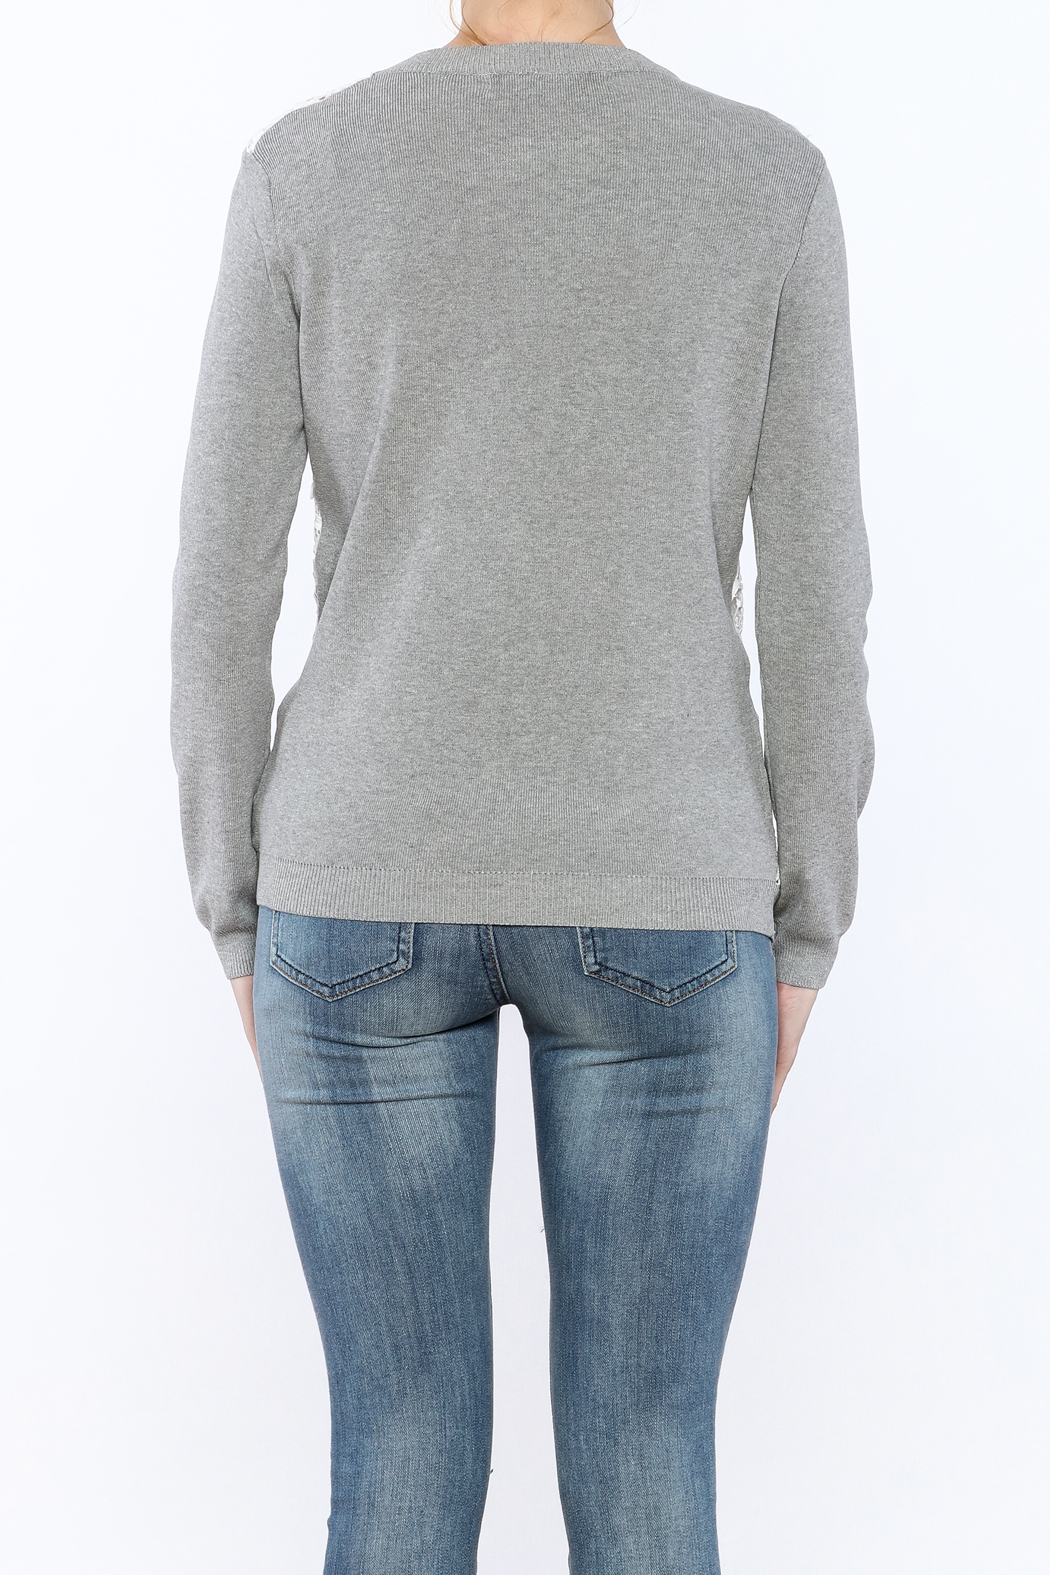 English Factory See-Through Pullover - Back Cropped Image